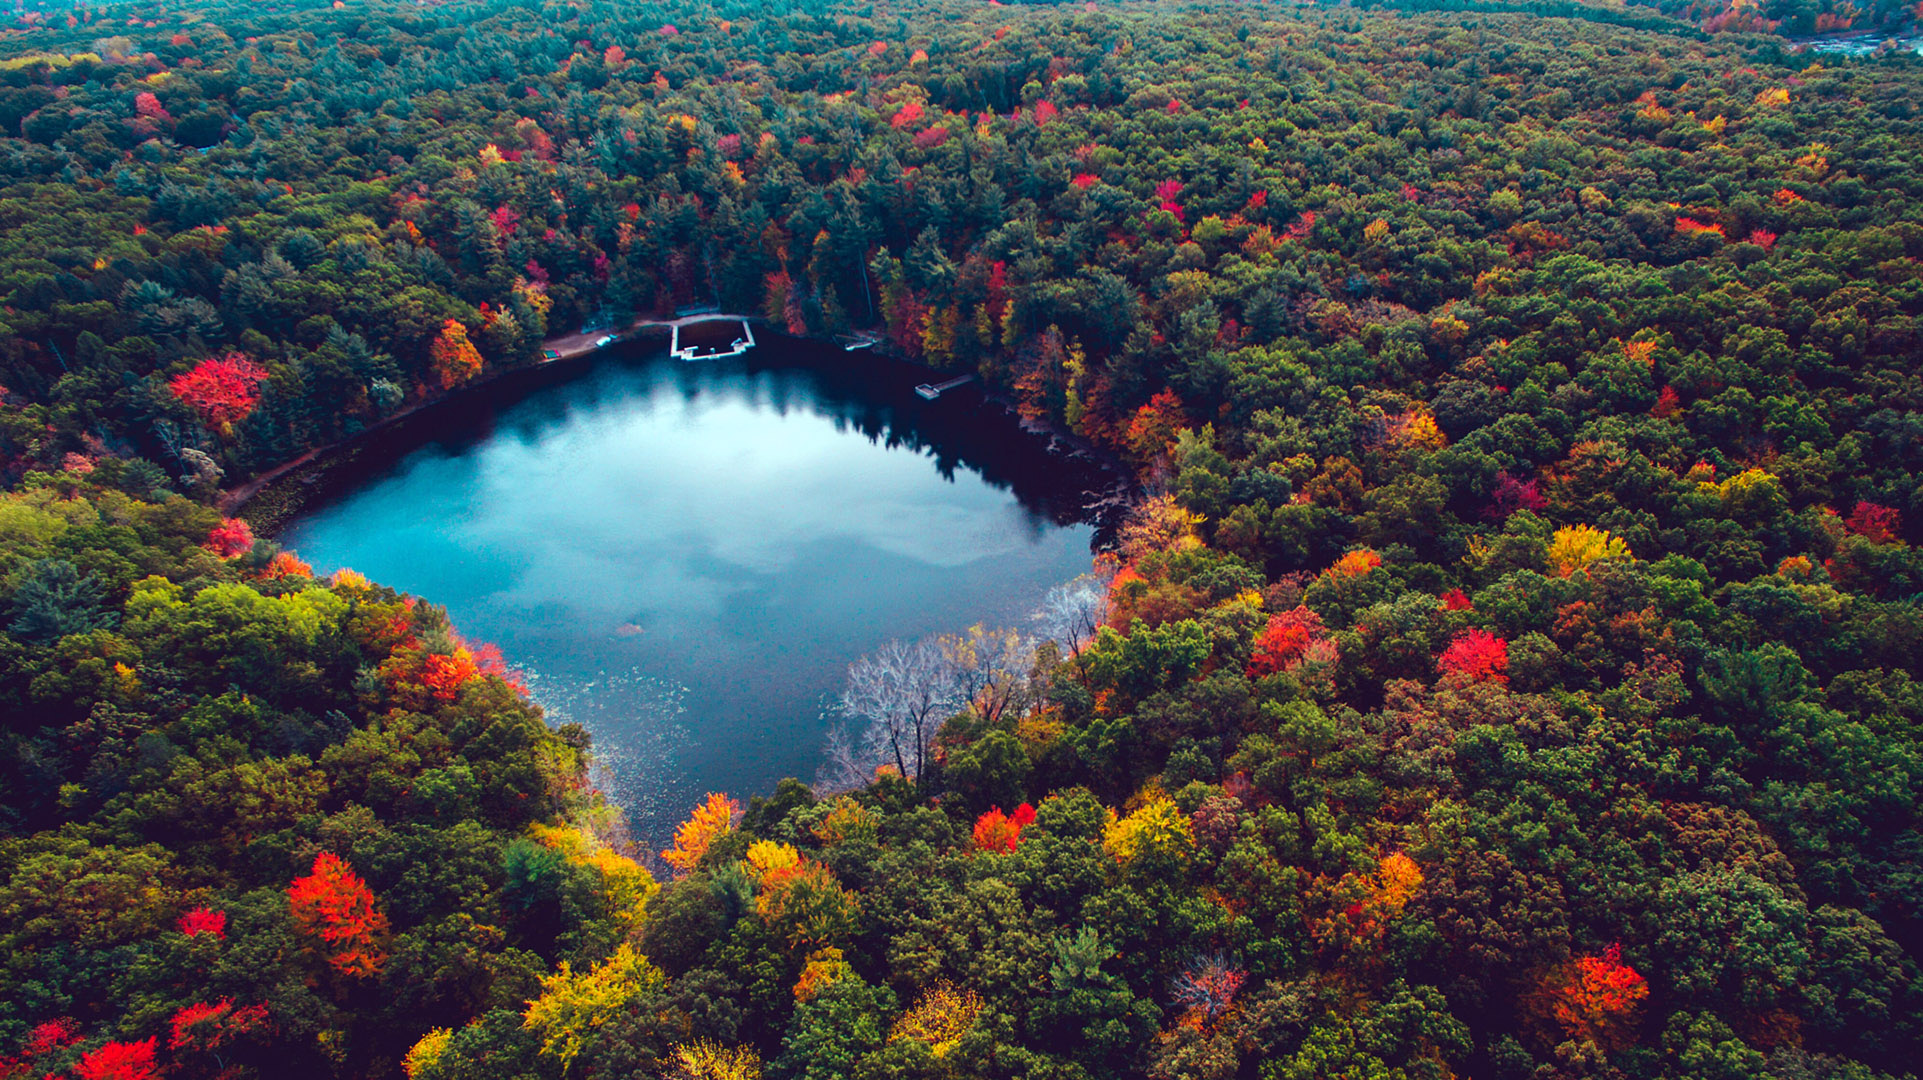 Fall Foliage Wallpaper For Iphone Lake In Autumn Forest Hd Wallpaper Background Image